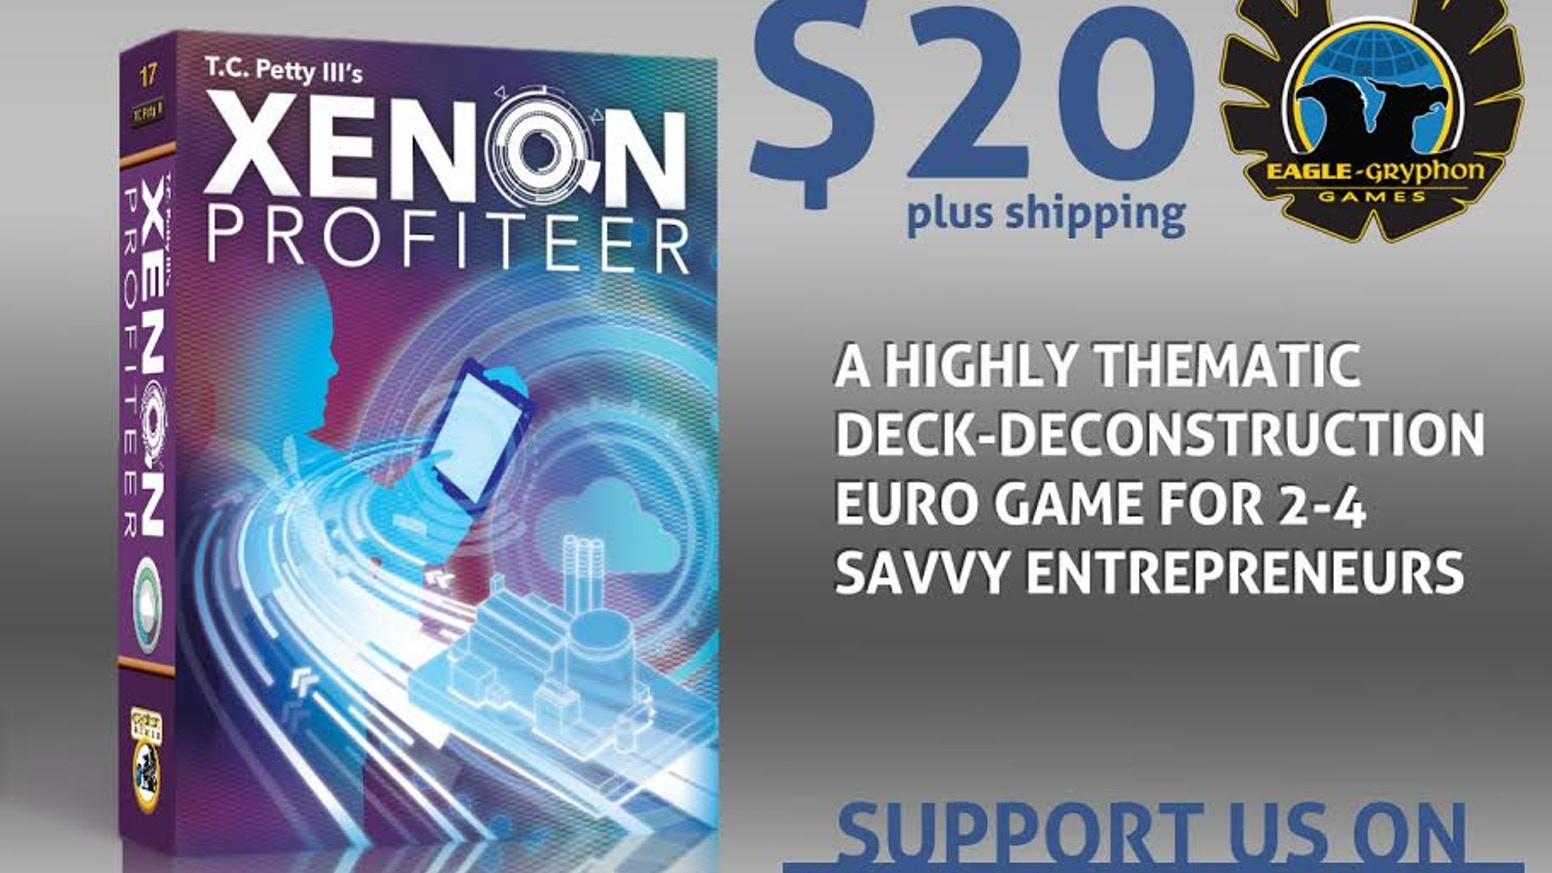 In Xenon Profiteer, you use your entrepreneurial spirit and an Air Separation facility to isolate valuable Xenon and make a profit.